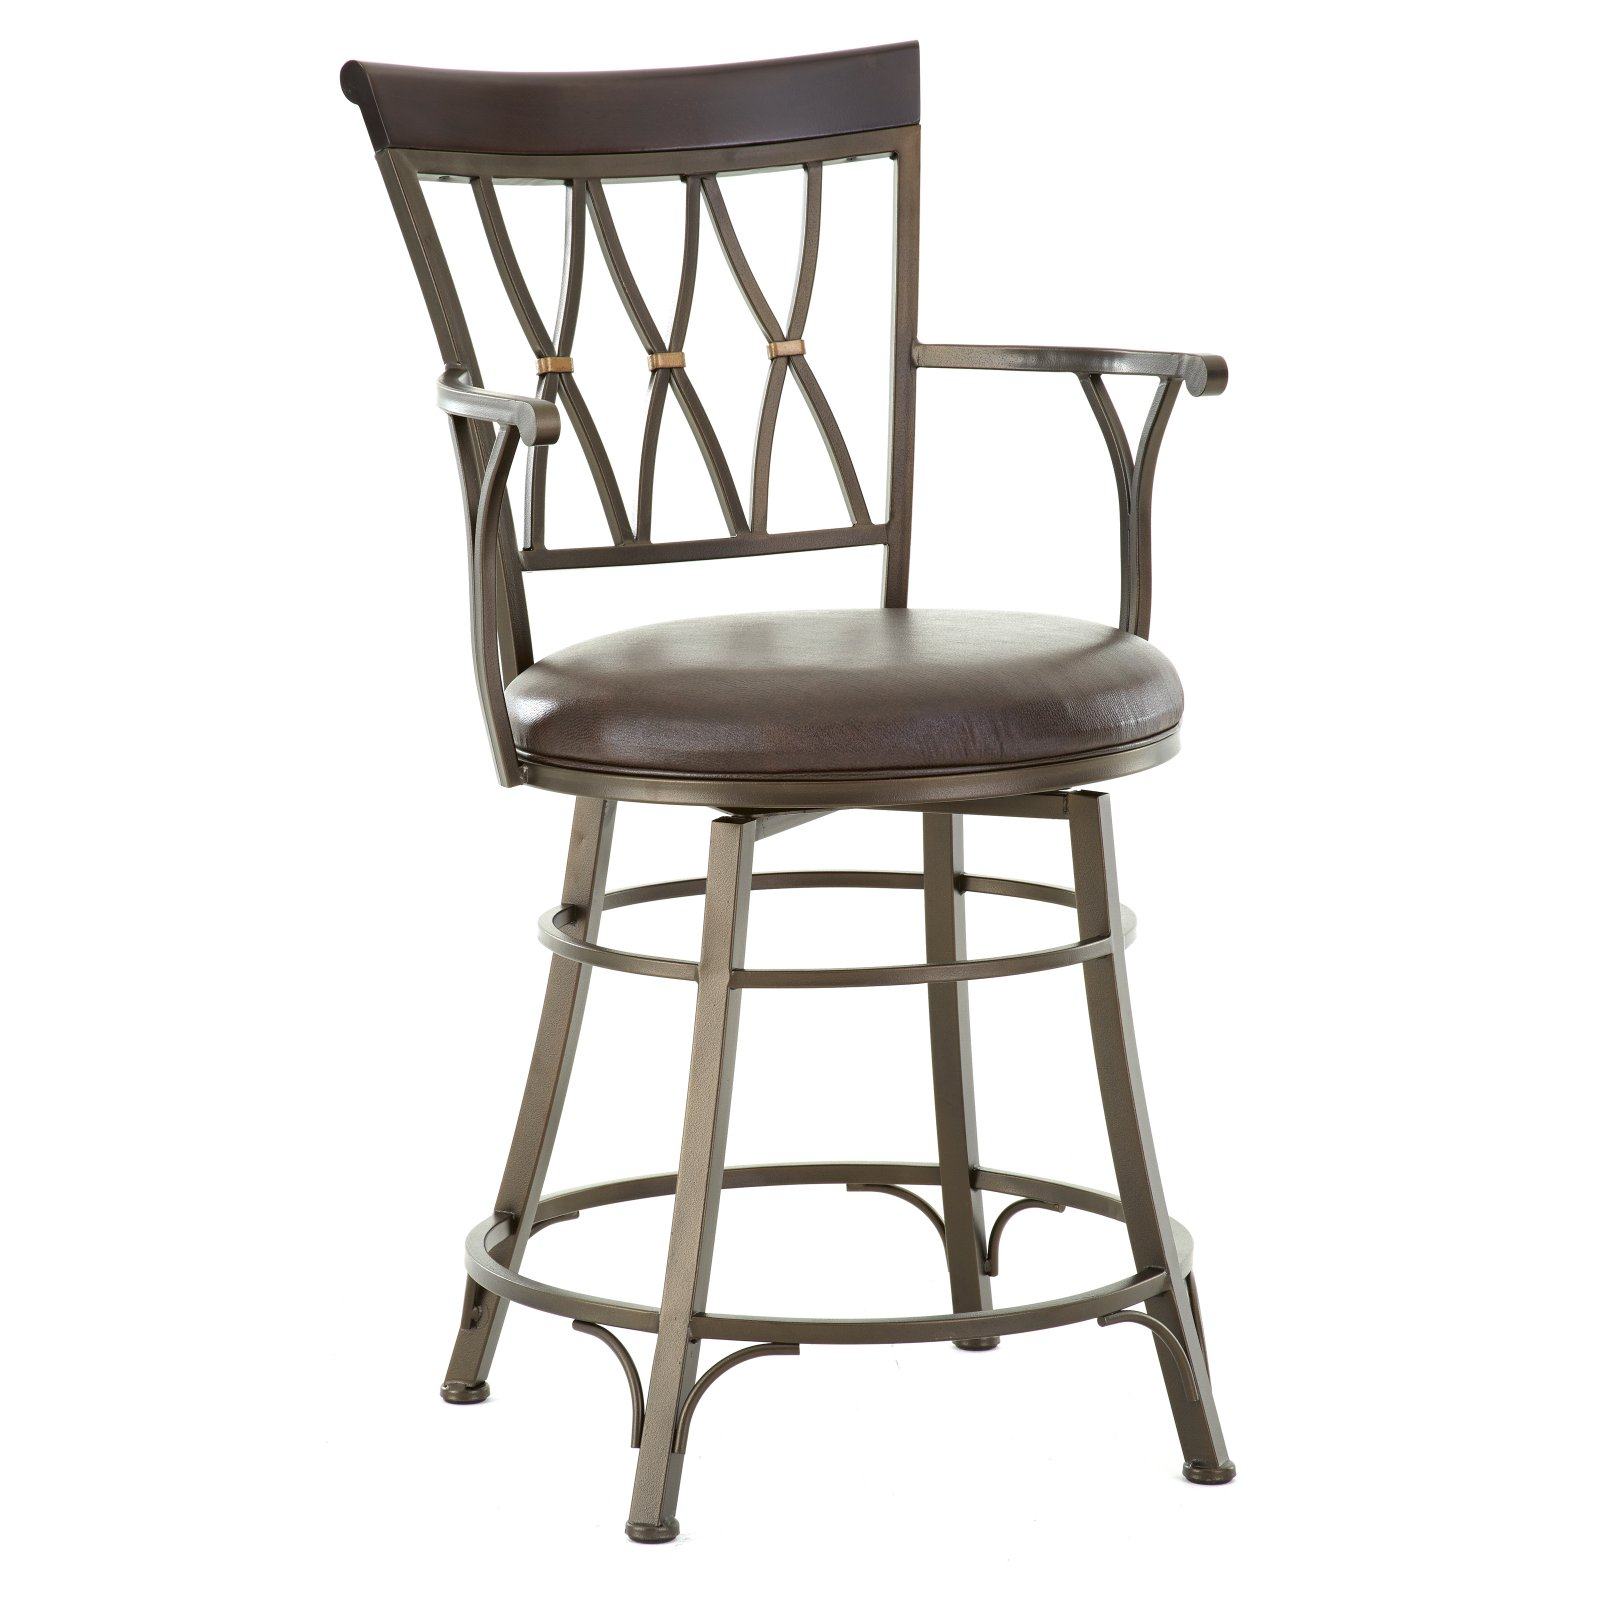 Steve Silver Bali 24 in. Jumbo Swivel Counter Stool with Armrest by Steve Silver Company